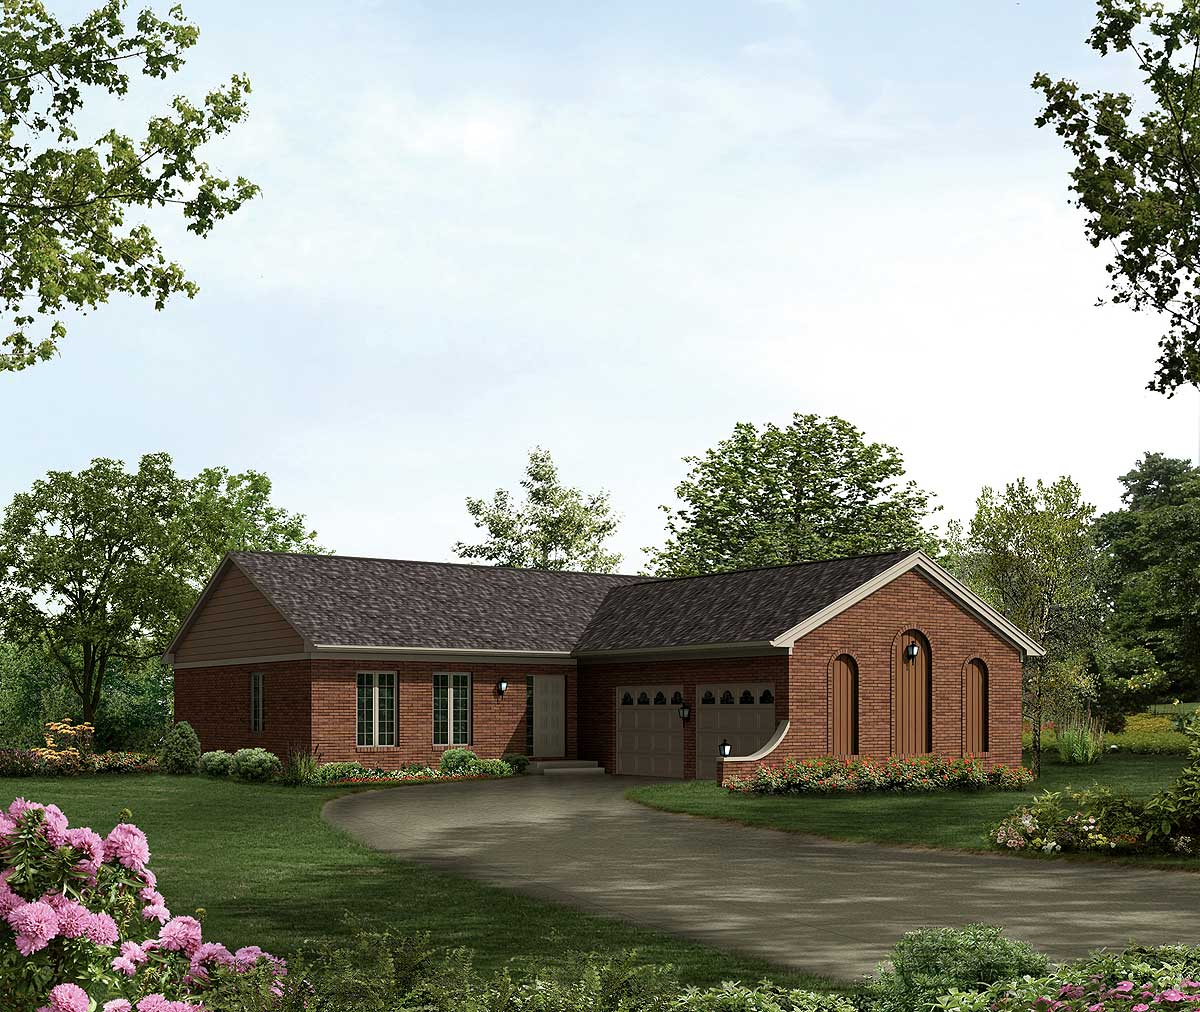 L Shaped Ranch With Many Amenities 57052ha